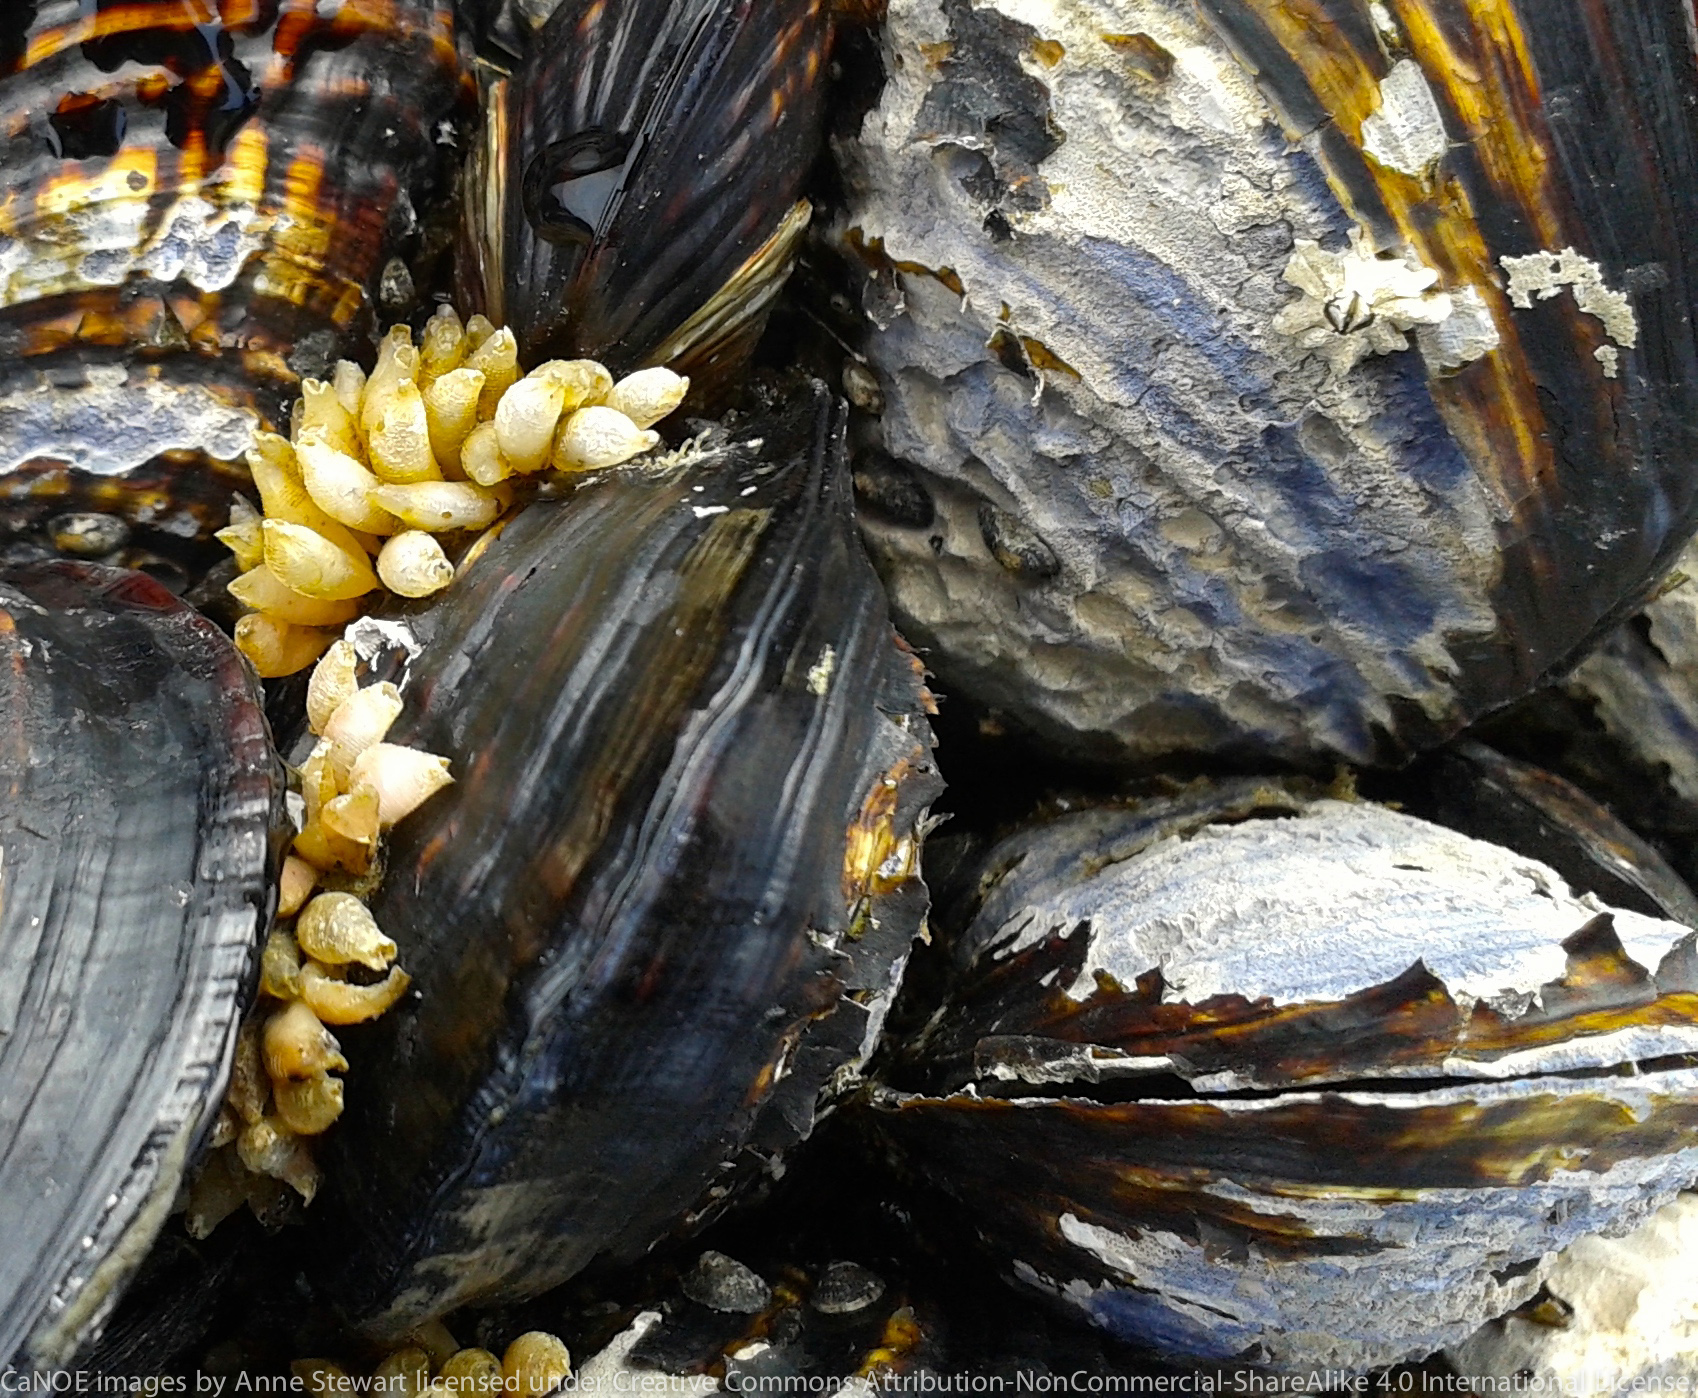 California Mussels with whelk egg capsules.jpg